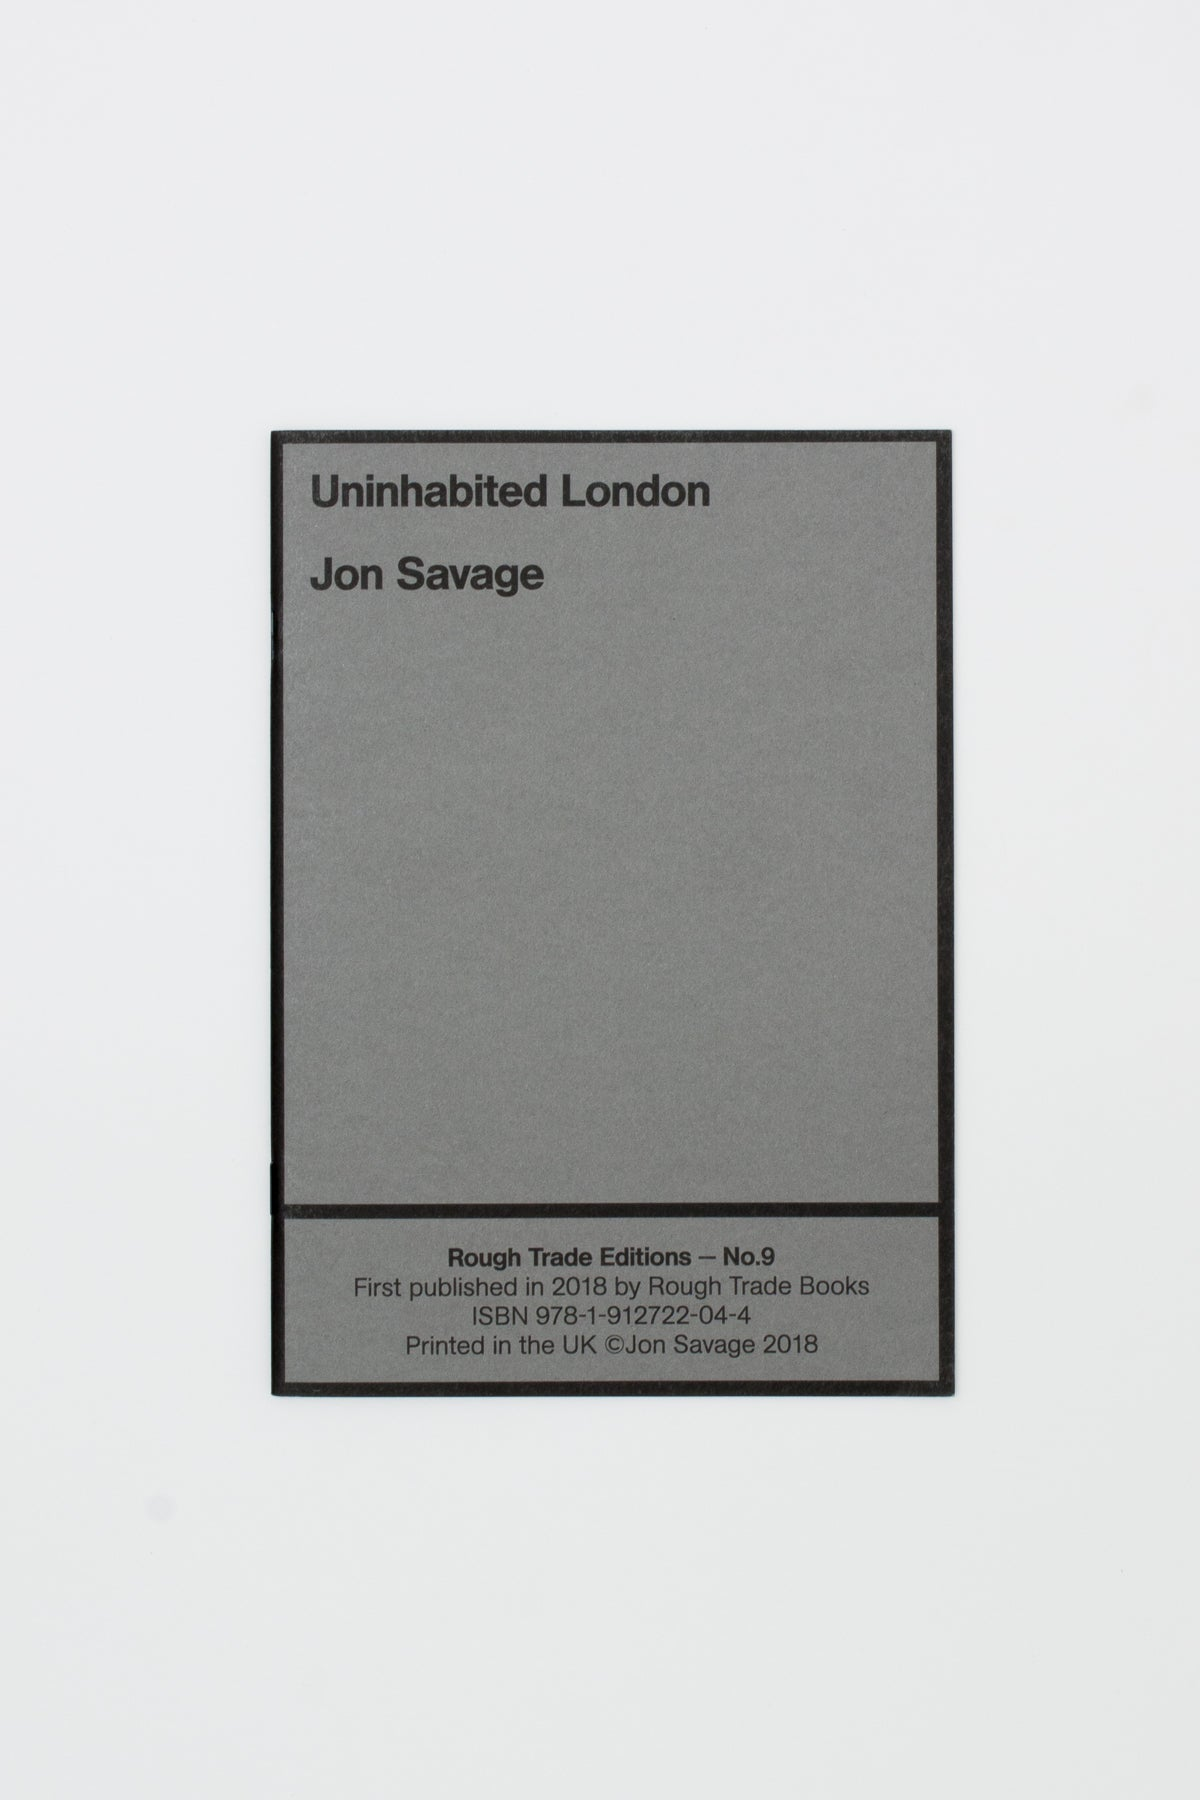 Uninhabited London - Jon Savage